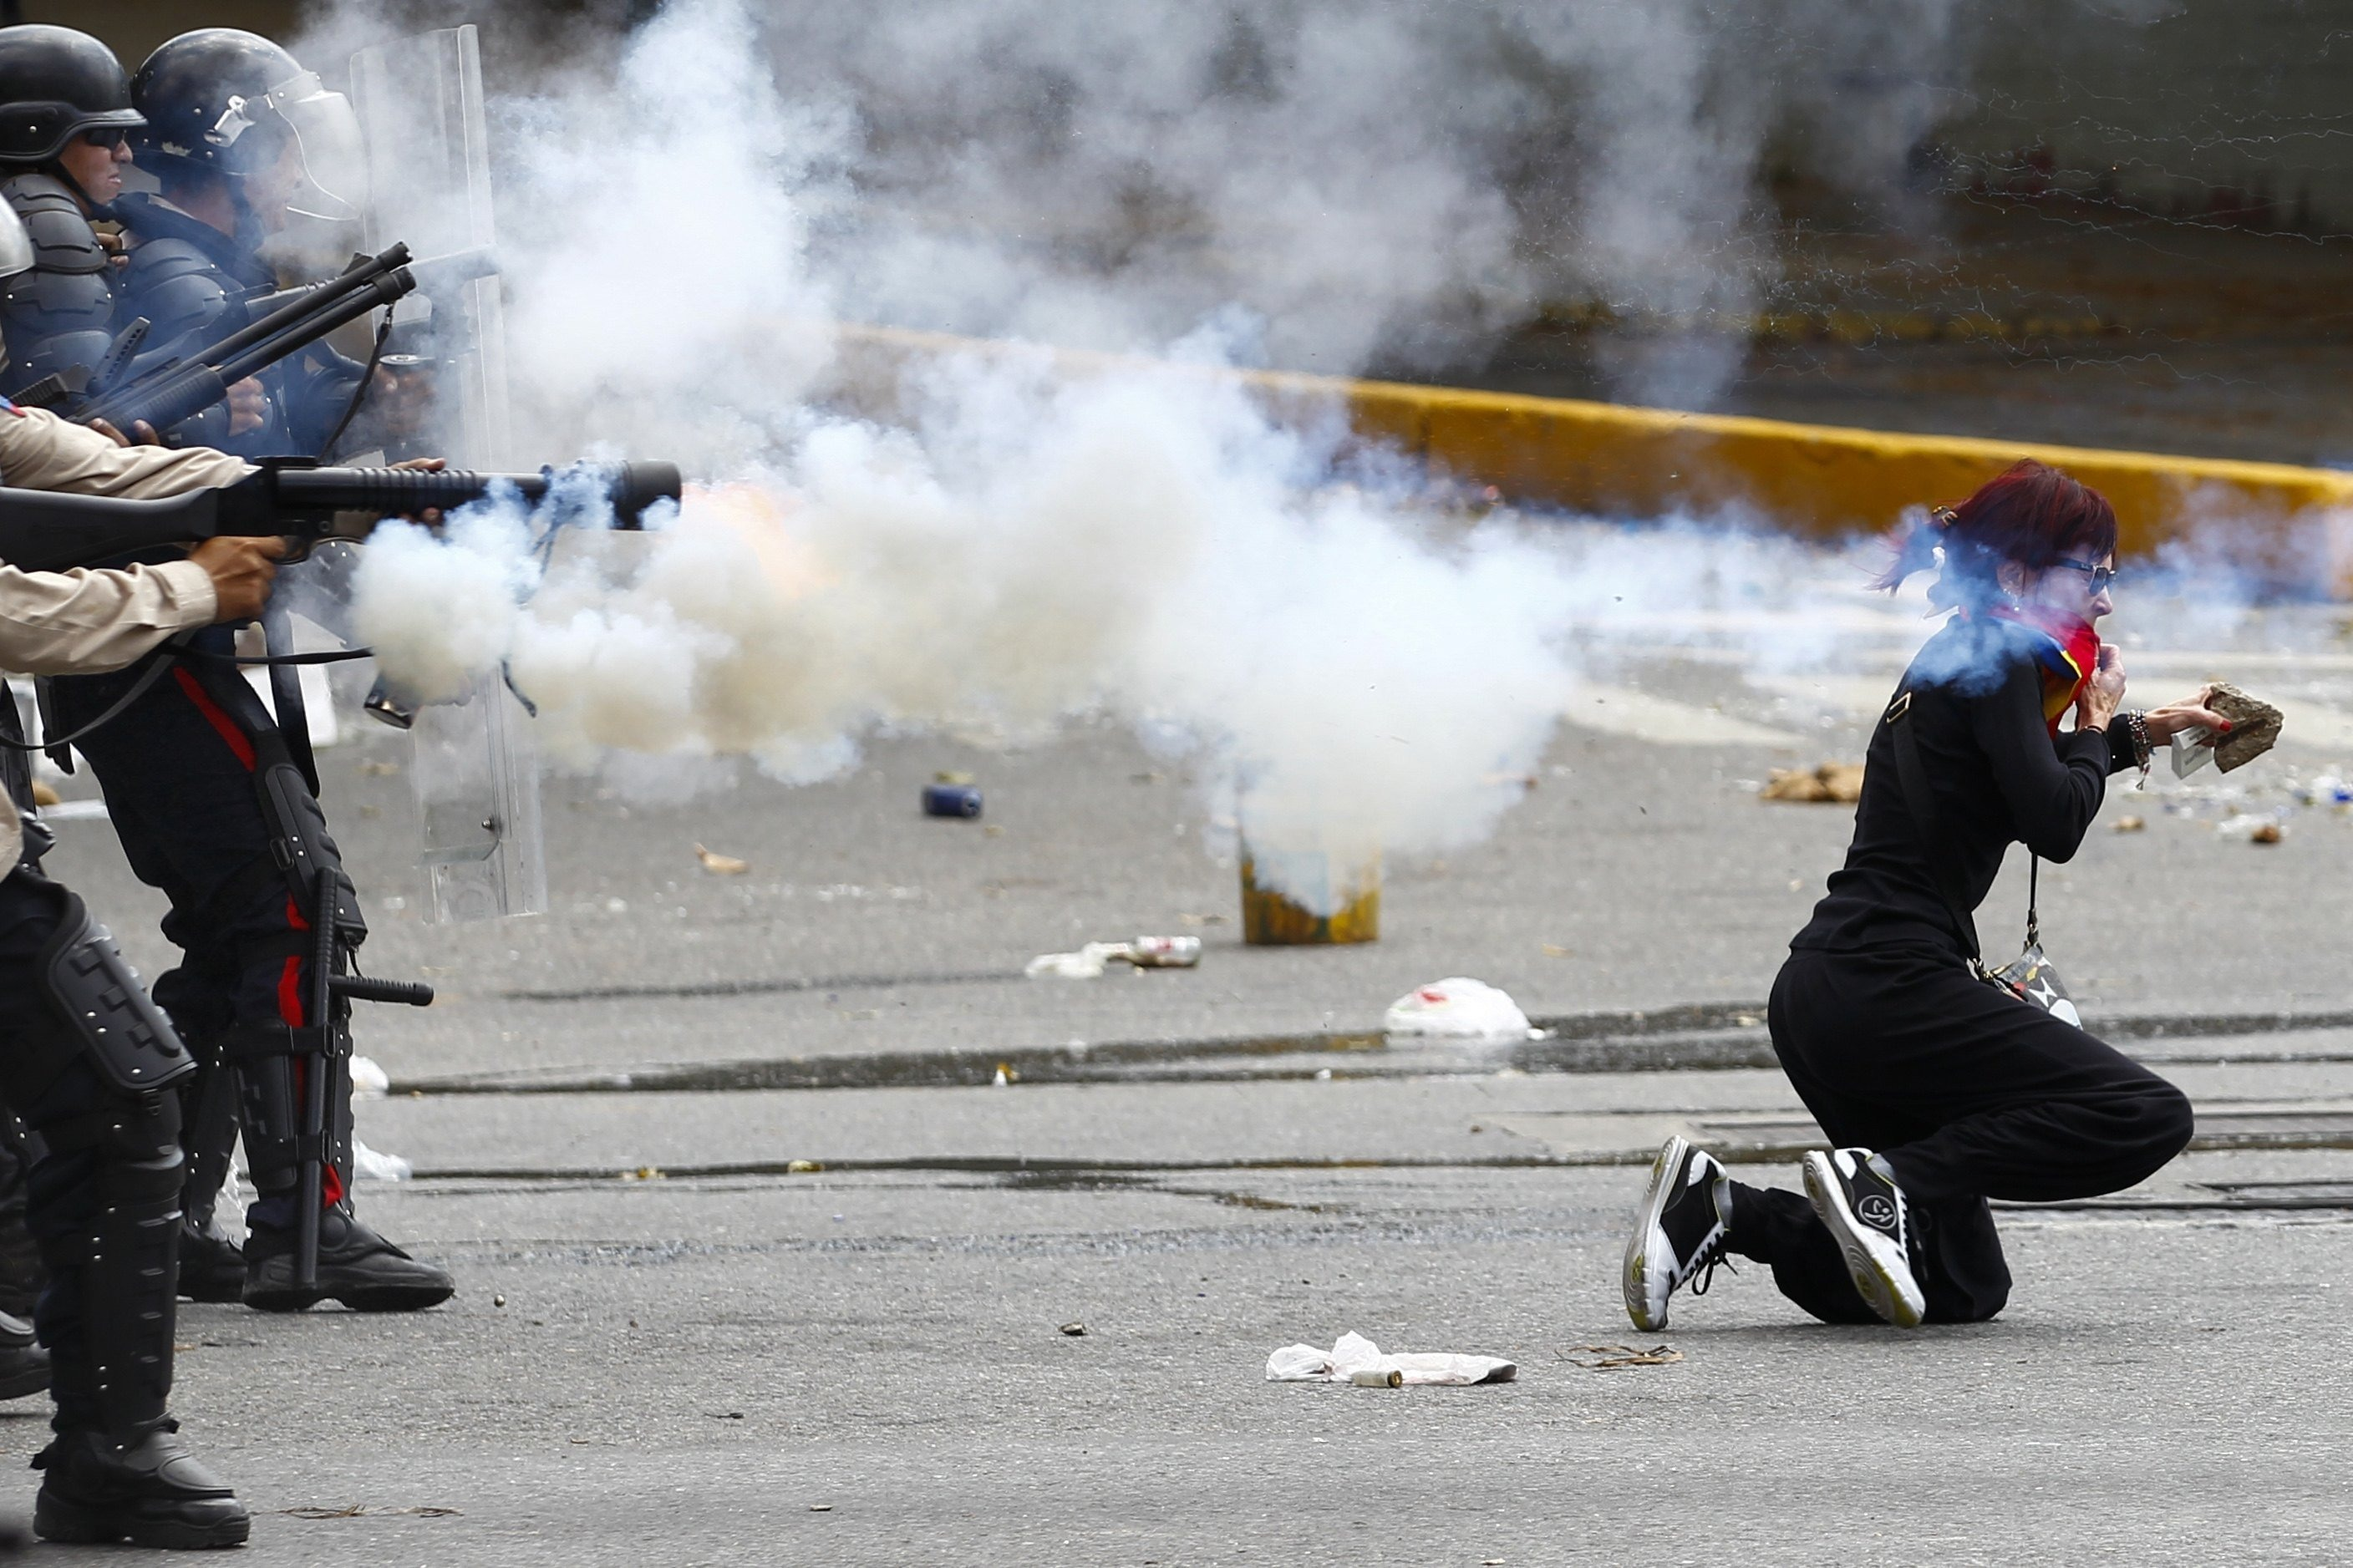 Growing unrest An antigovernment protester ducks for cover as Venezuelan police fire tear gas during riots in Caracas